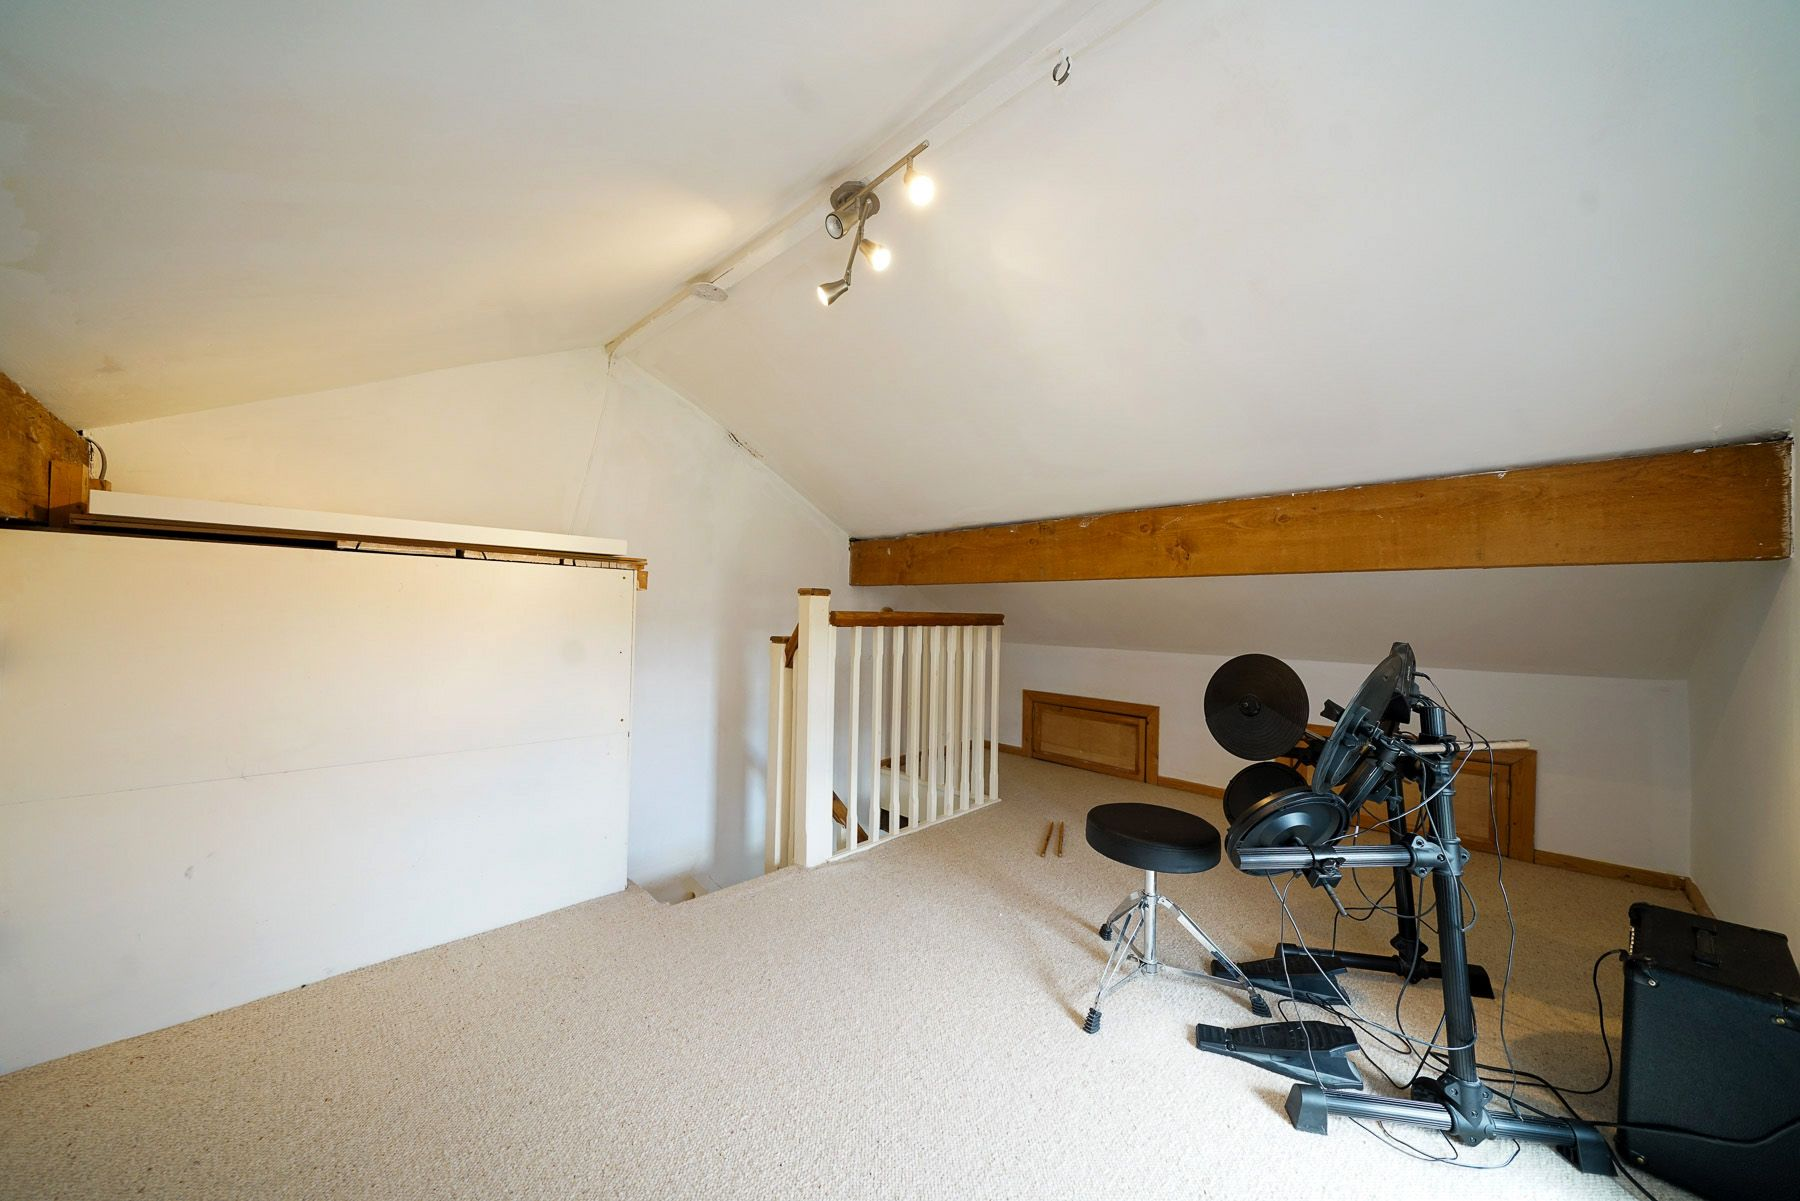 3 bedroom end terraced house SSTC in Bolton - Photograph 62